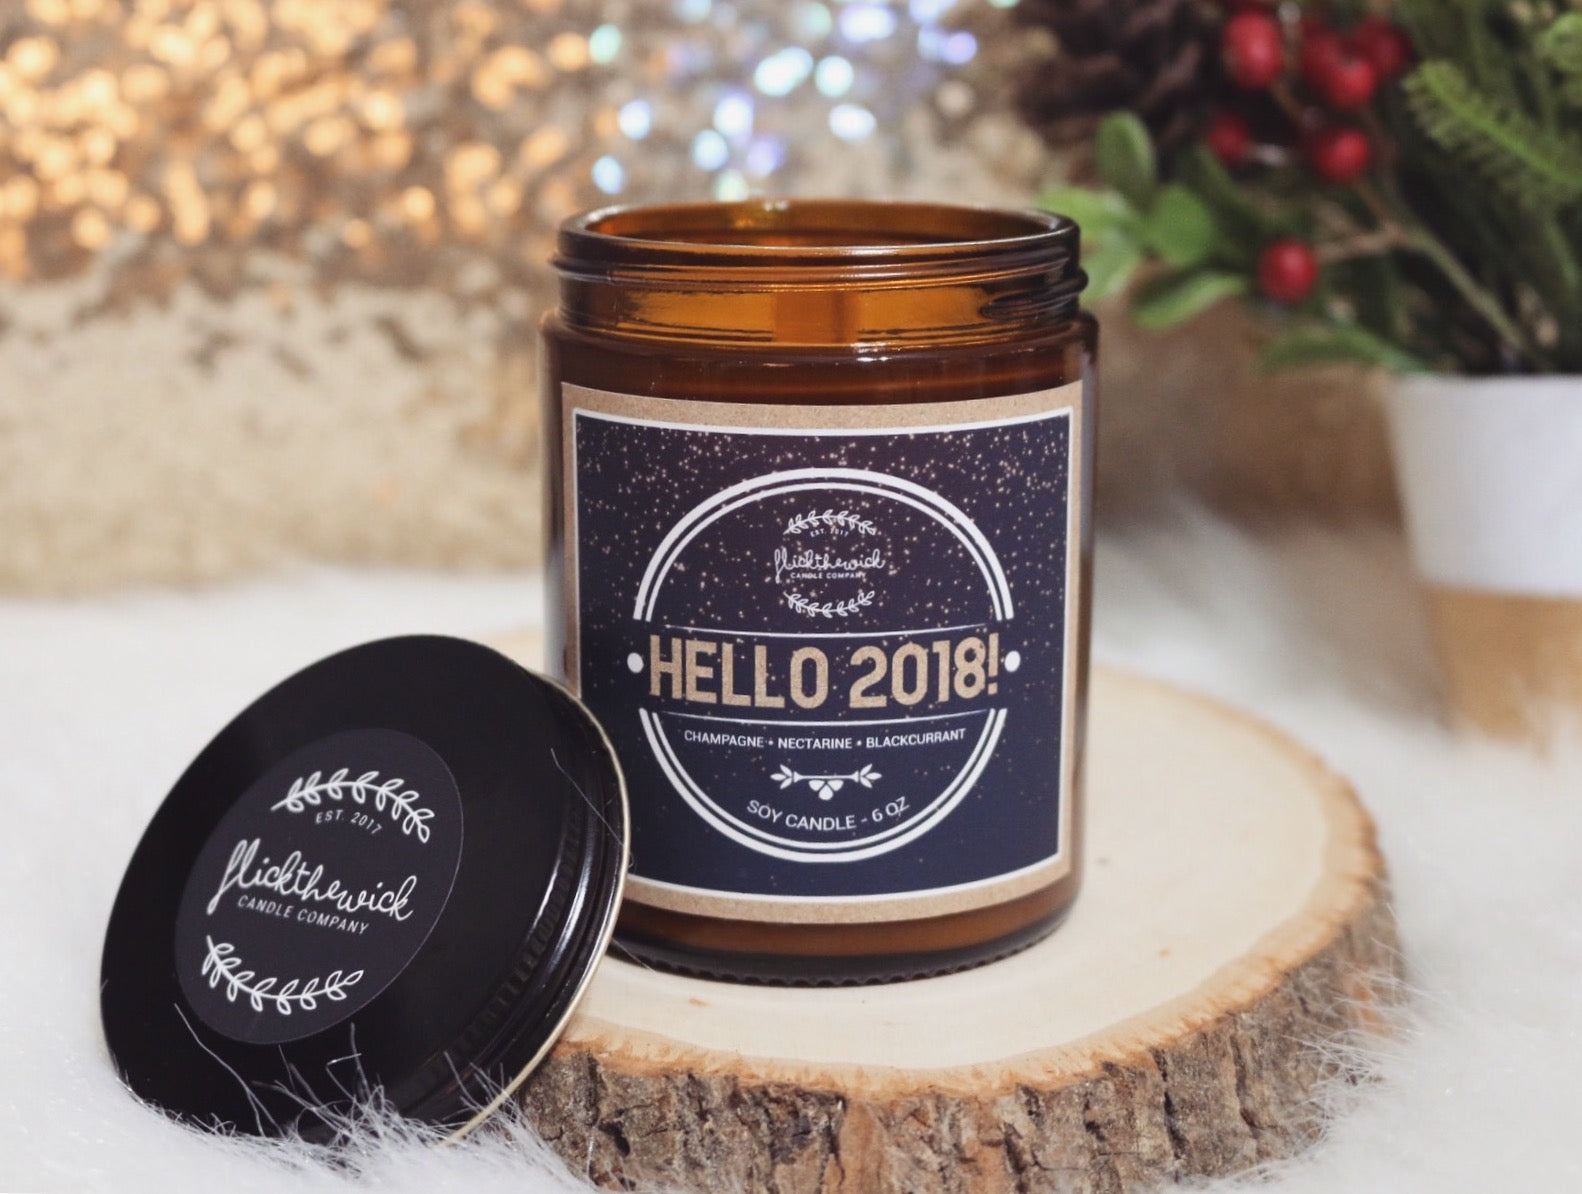 Hello 2018! - Candle of the Month (6oz)